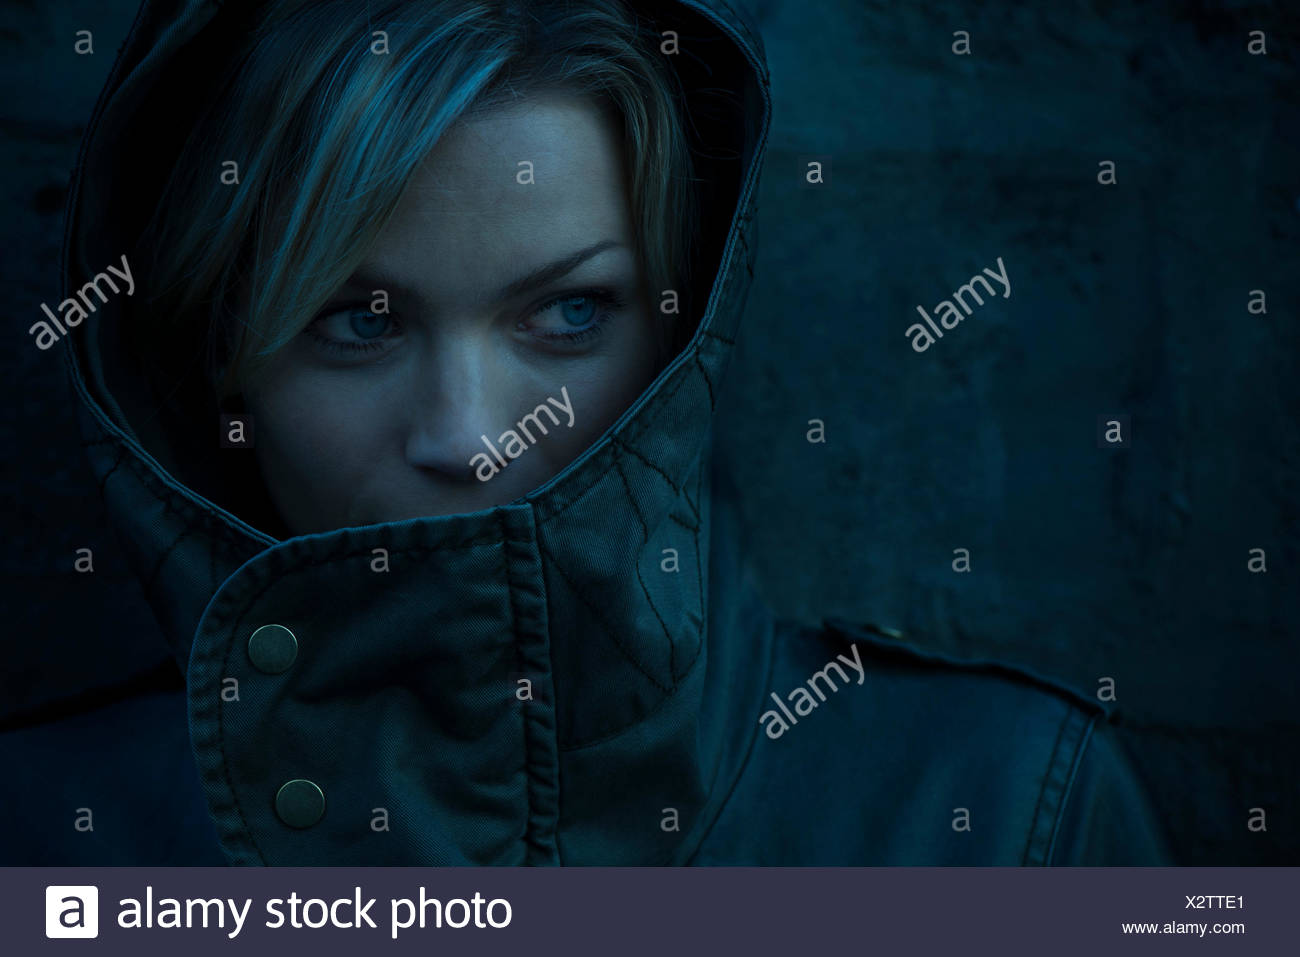 Woman with face partially concealed by hood - Stock Image